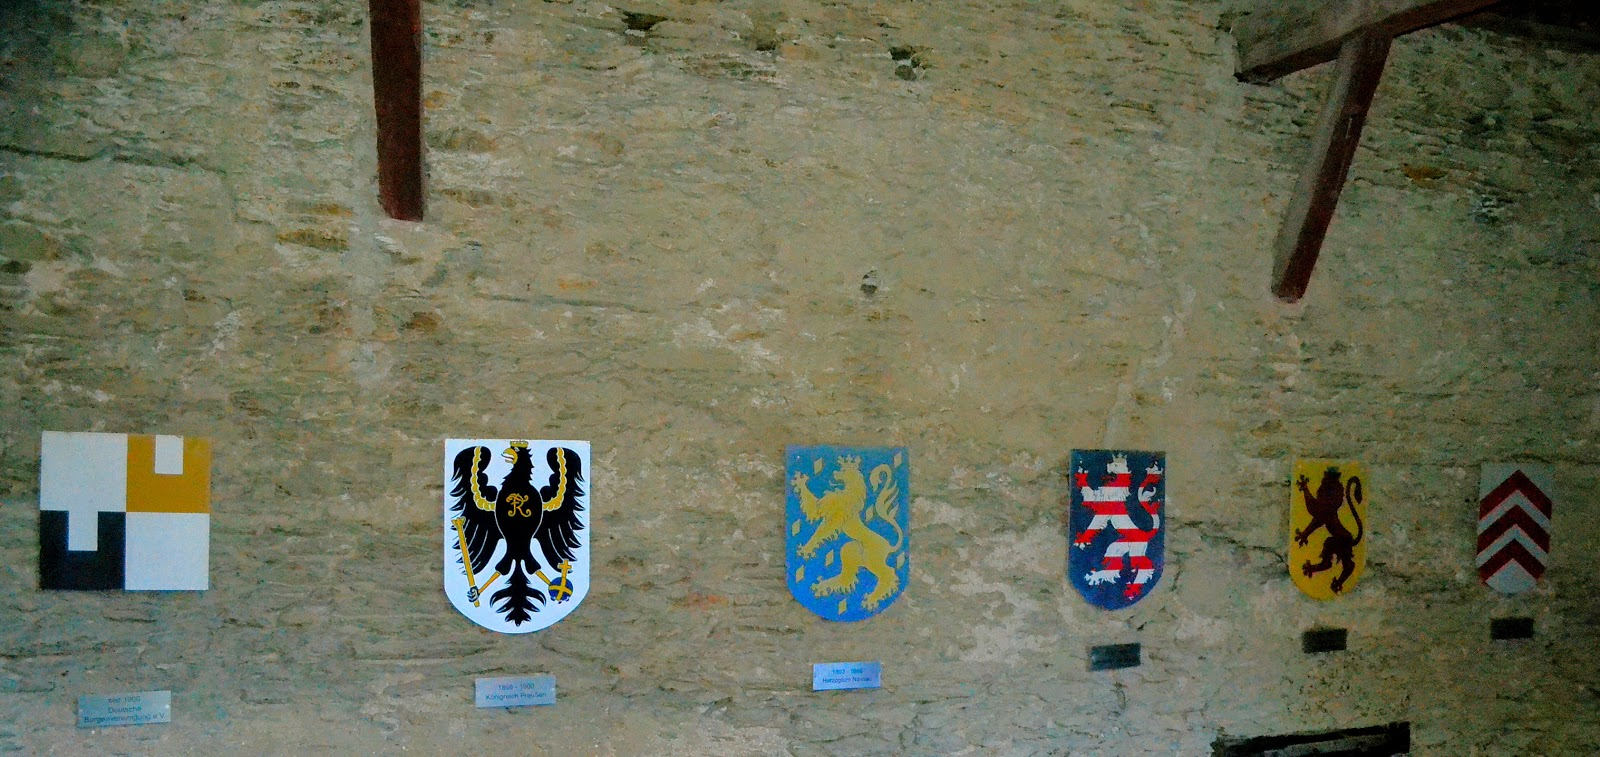 Tracing the lineage of the Marksburg Castle from the Lords of Eppstein at the far right to the German Castles Association, a span of 900 of years.